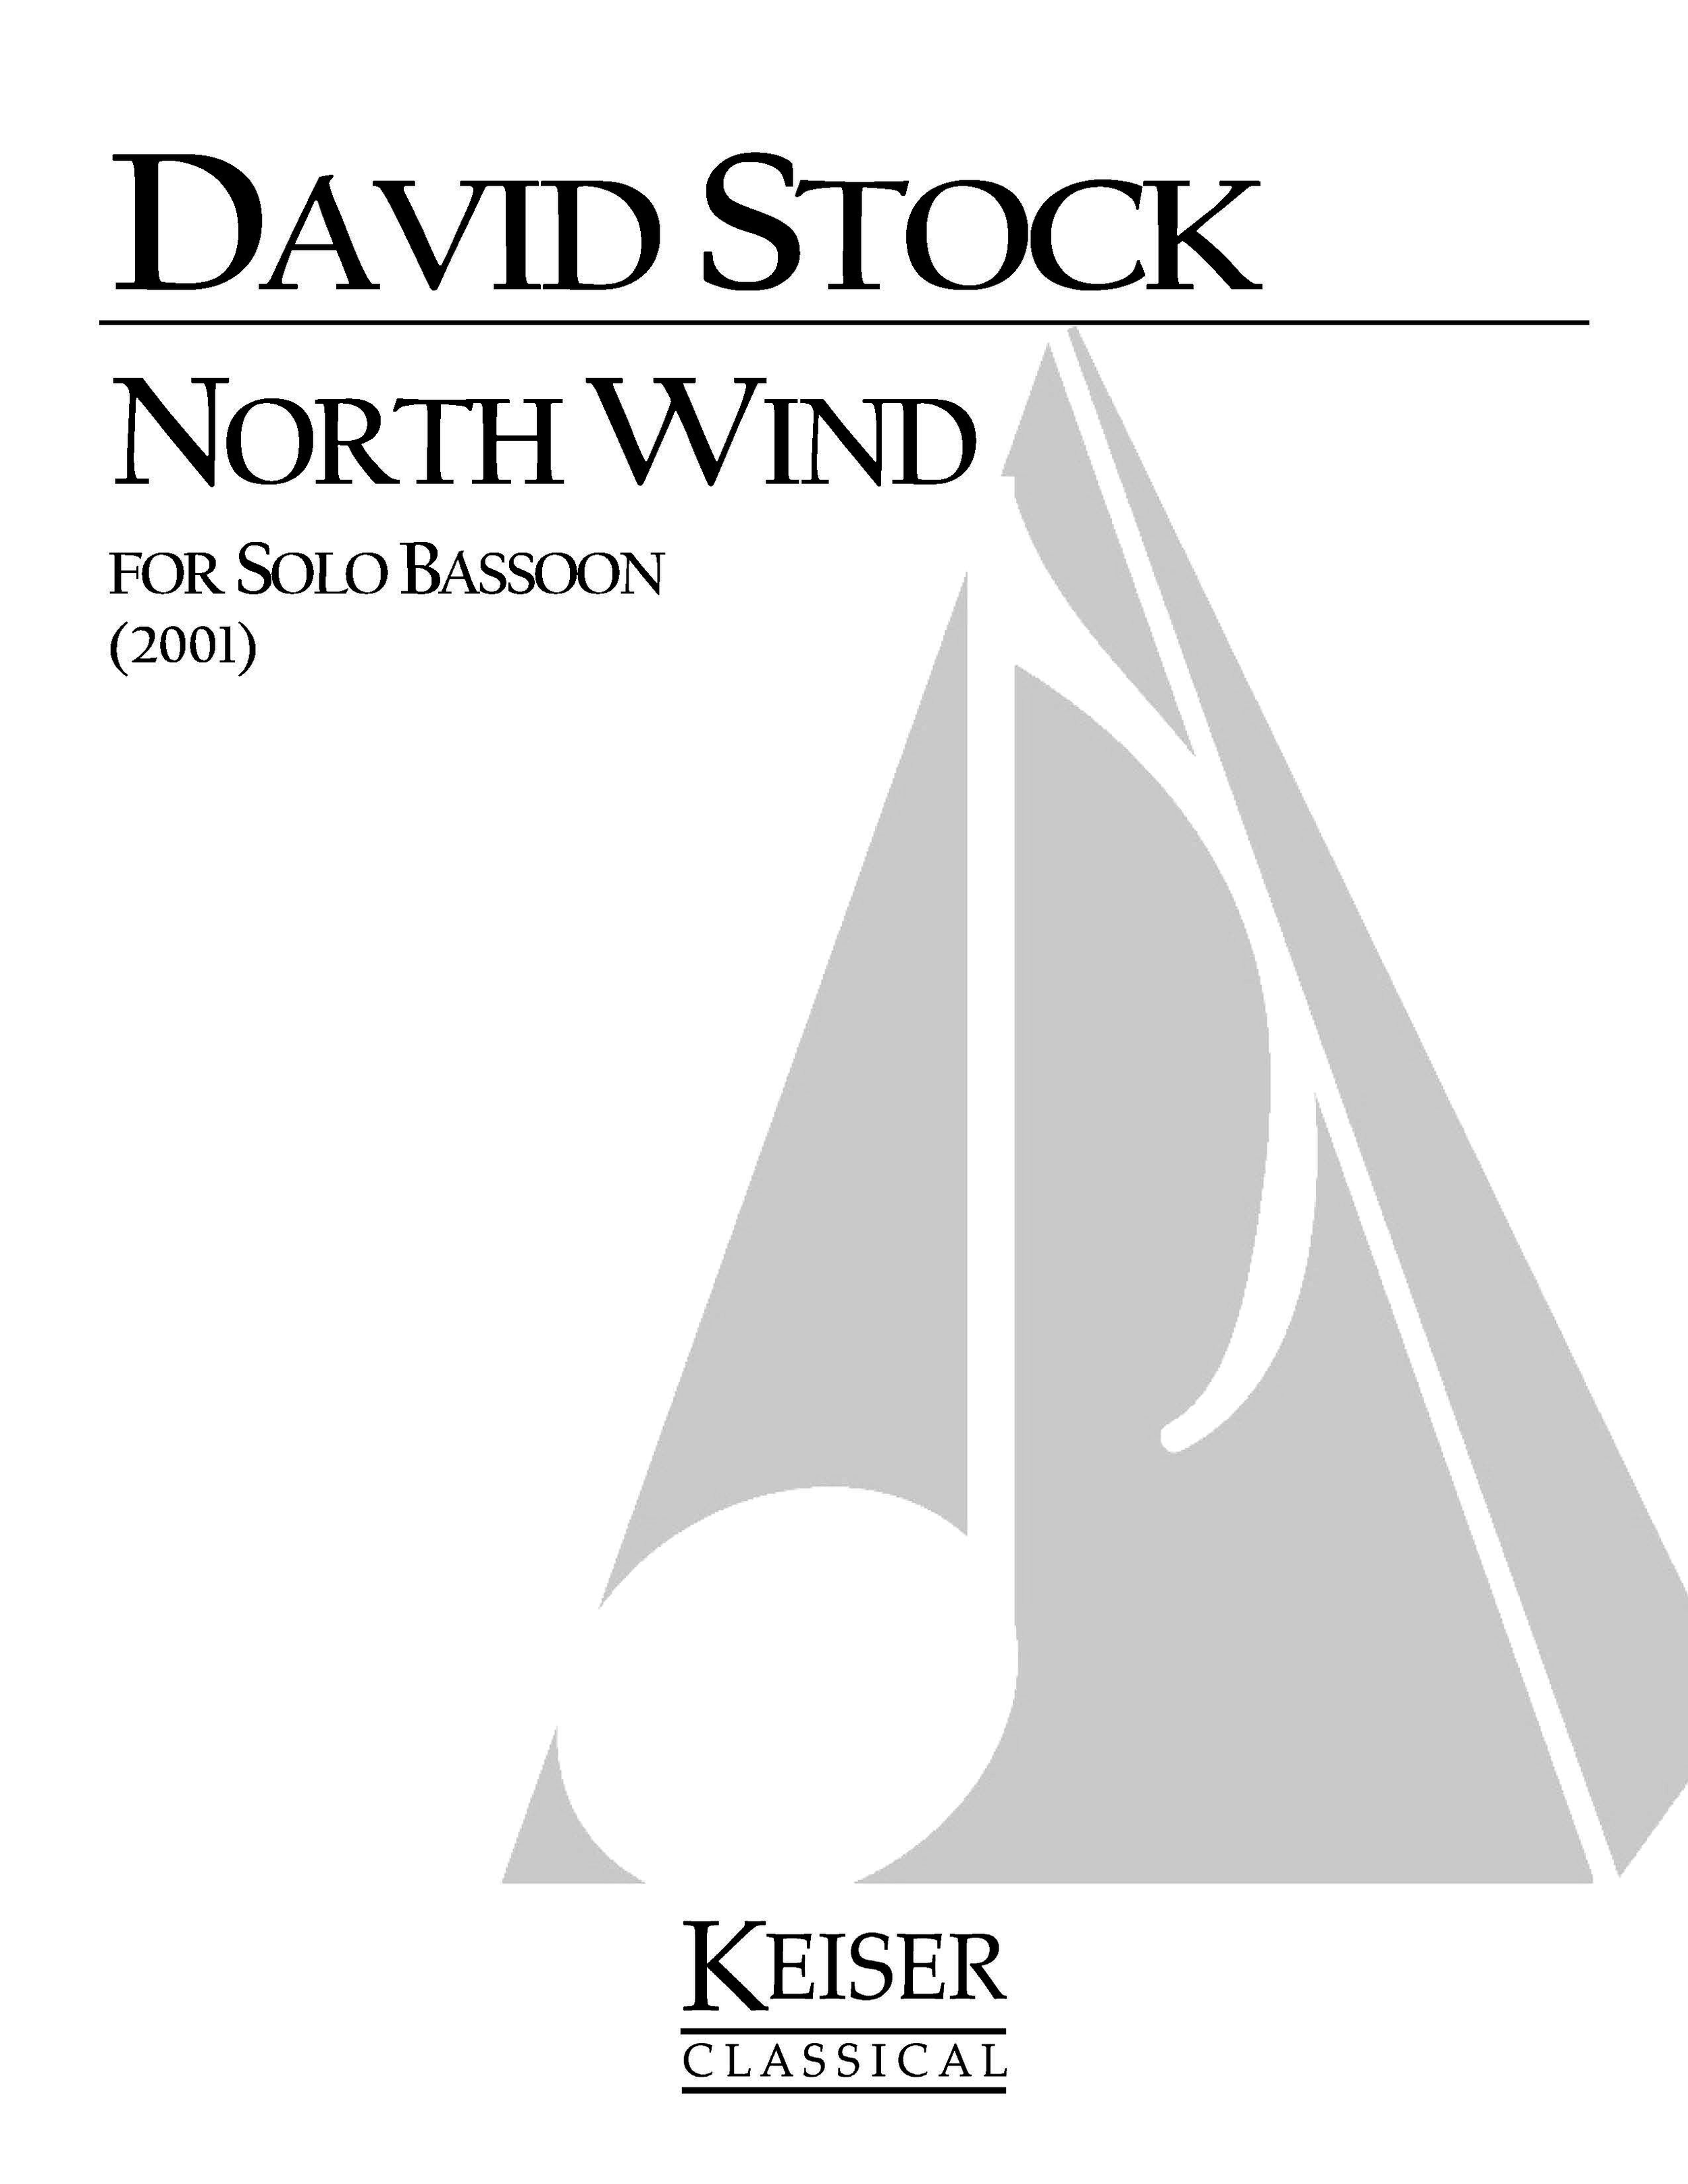 North Wind (2001) - Bassoon SoloRent/Buy: Keiser Music